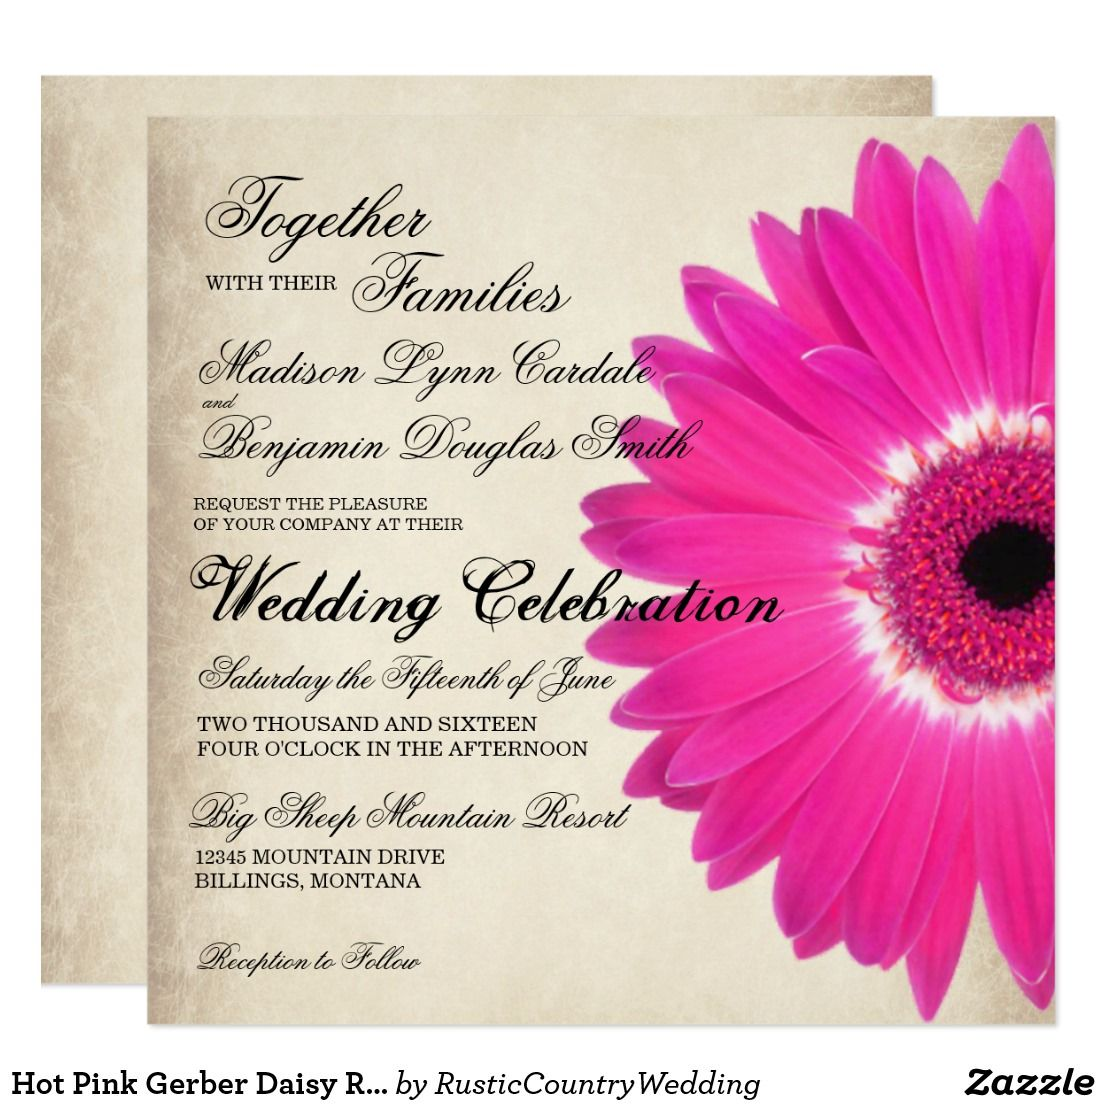 Hot Pink Gerber Daisy Rustic Wedding Invitations Zazzle Com Flower Wedding Invitation Wedding Invitations Rustic Pink Gerber Daisy